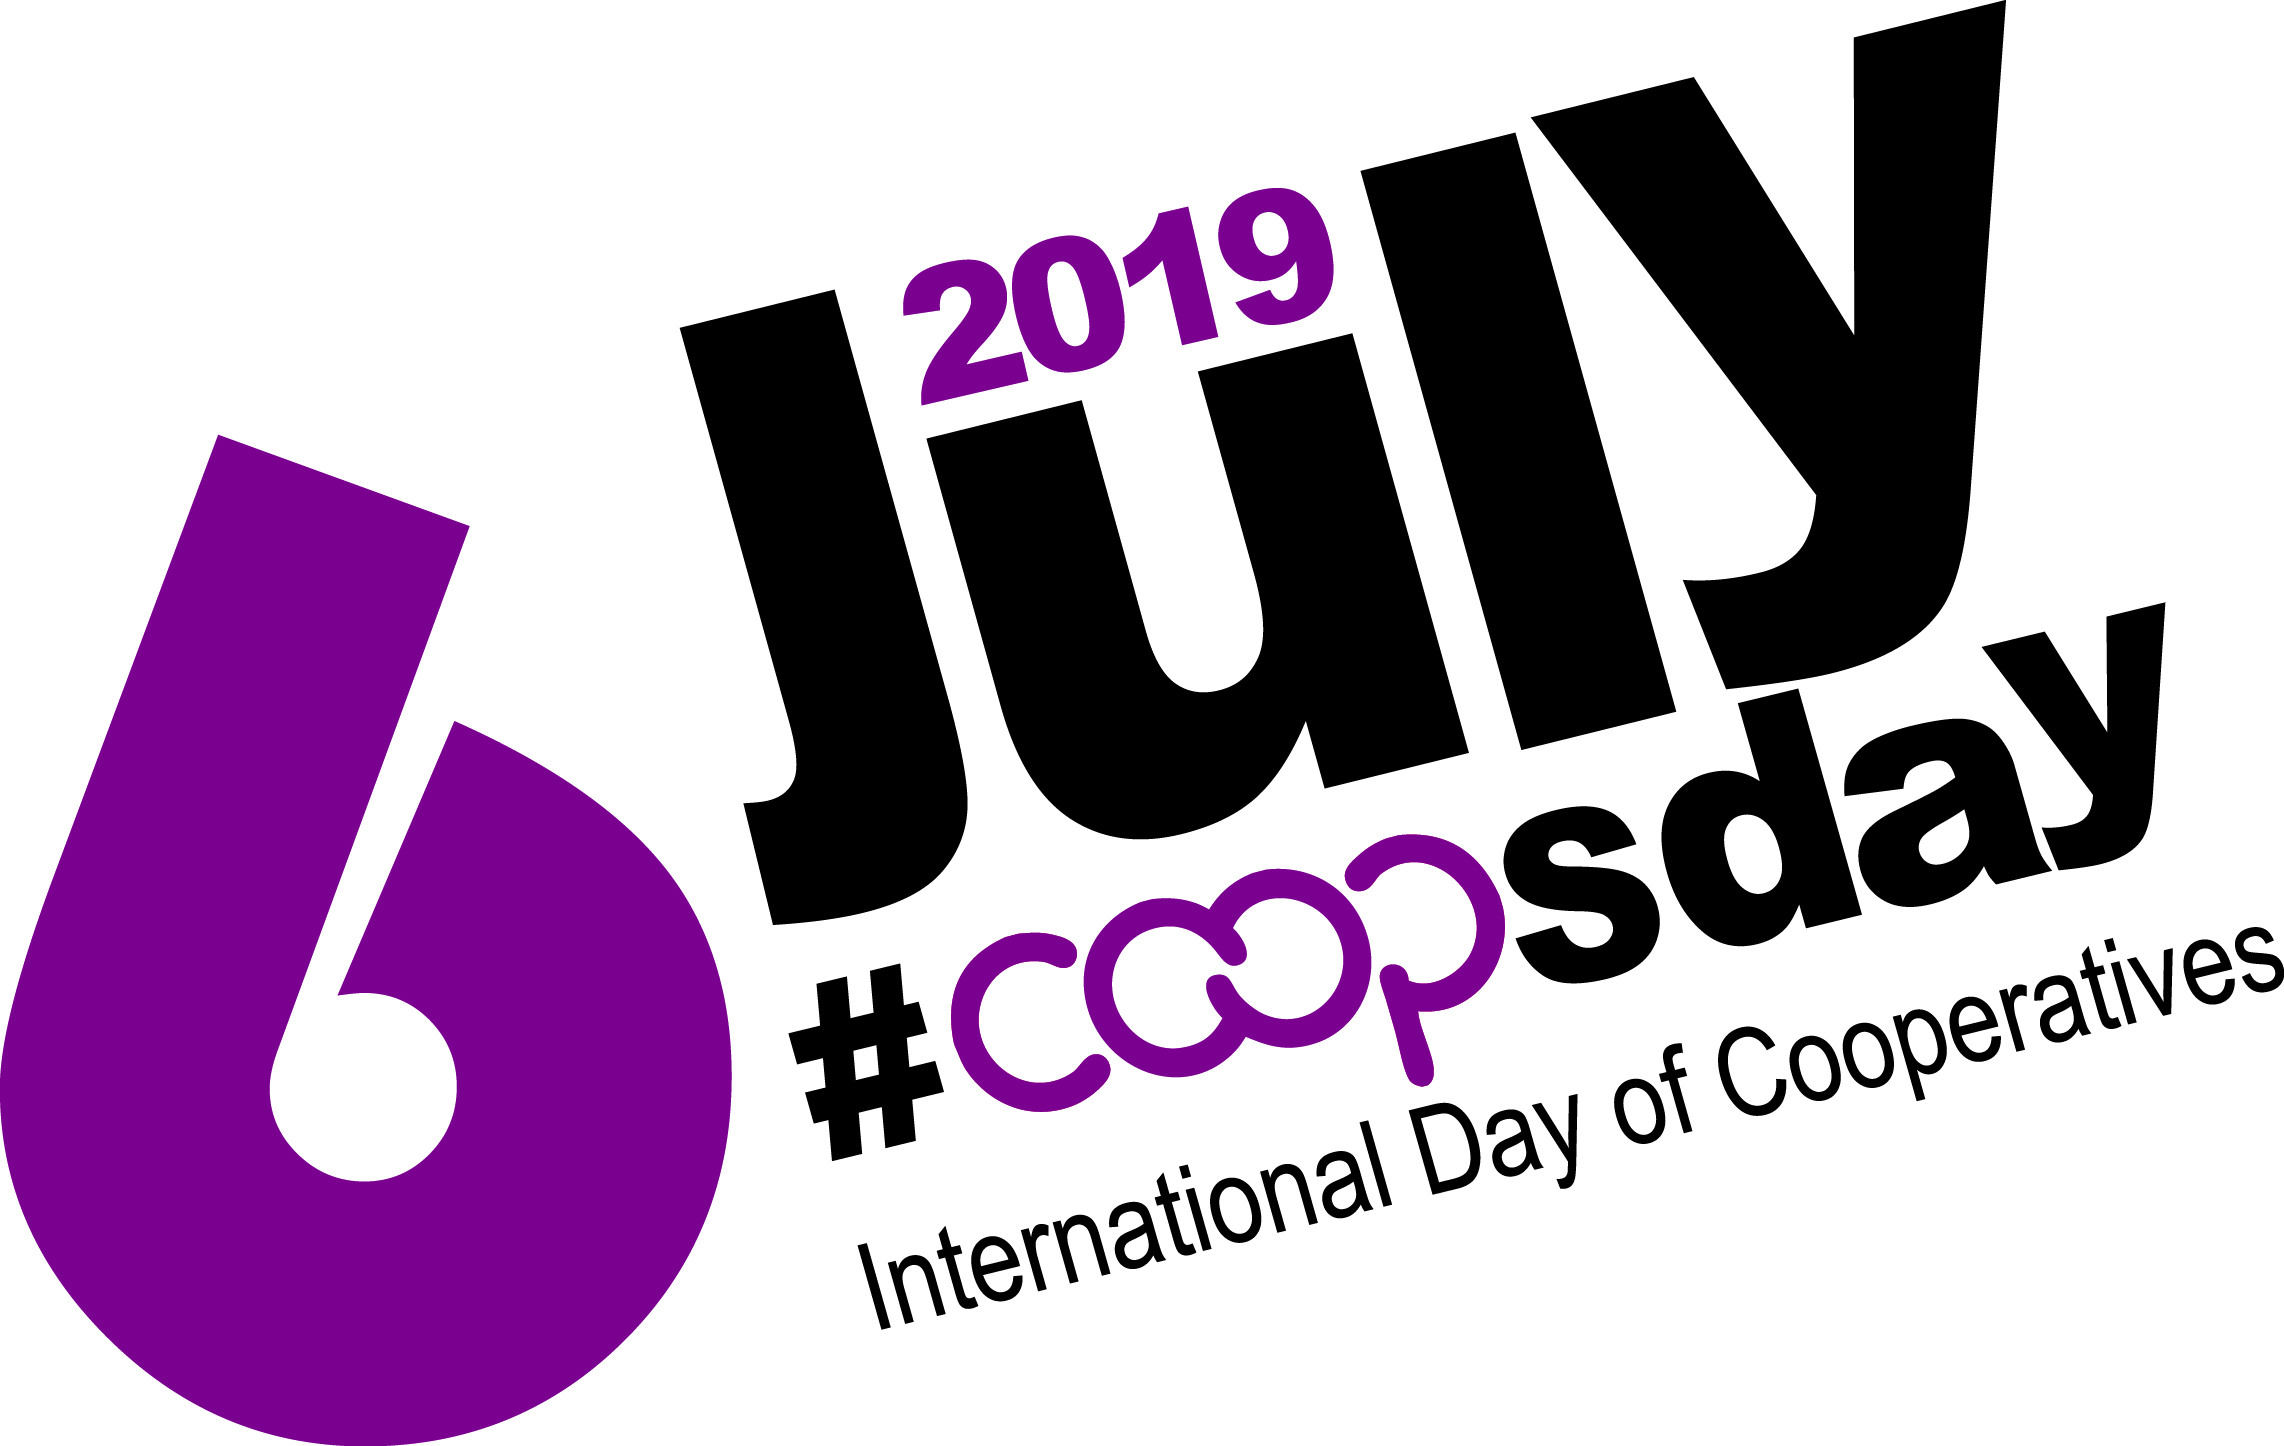 2019 International Day of Cooperatives